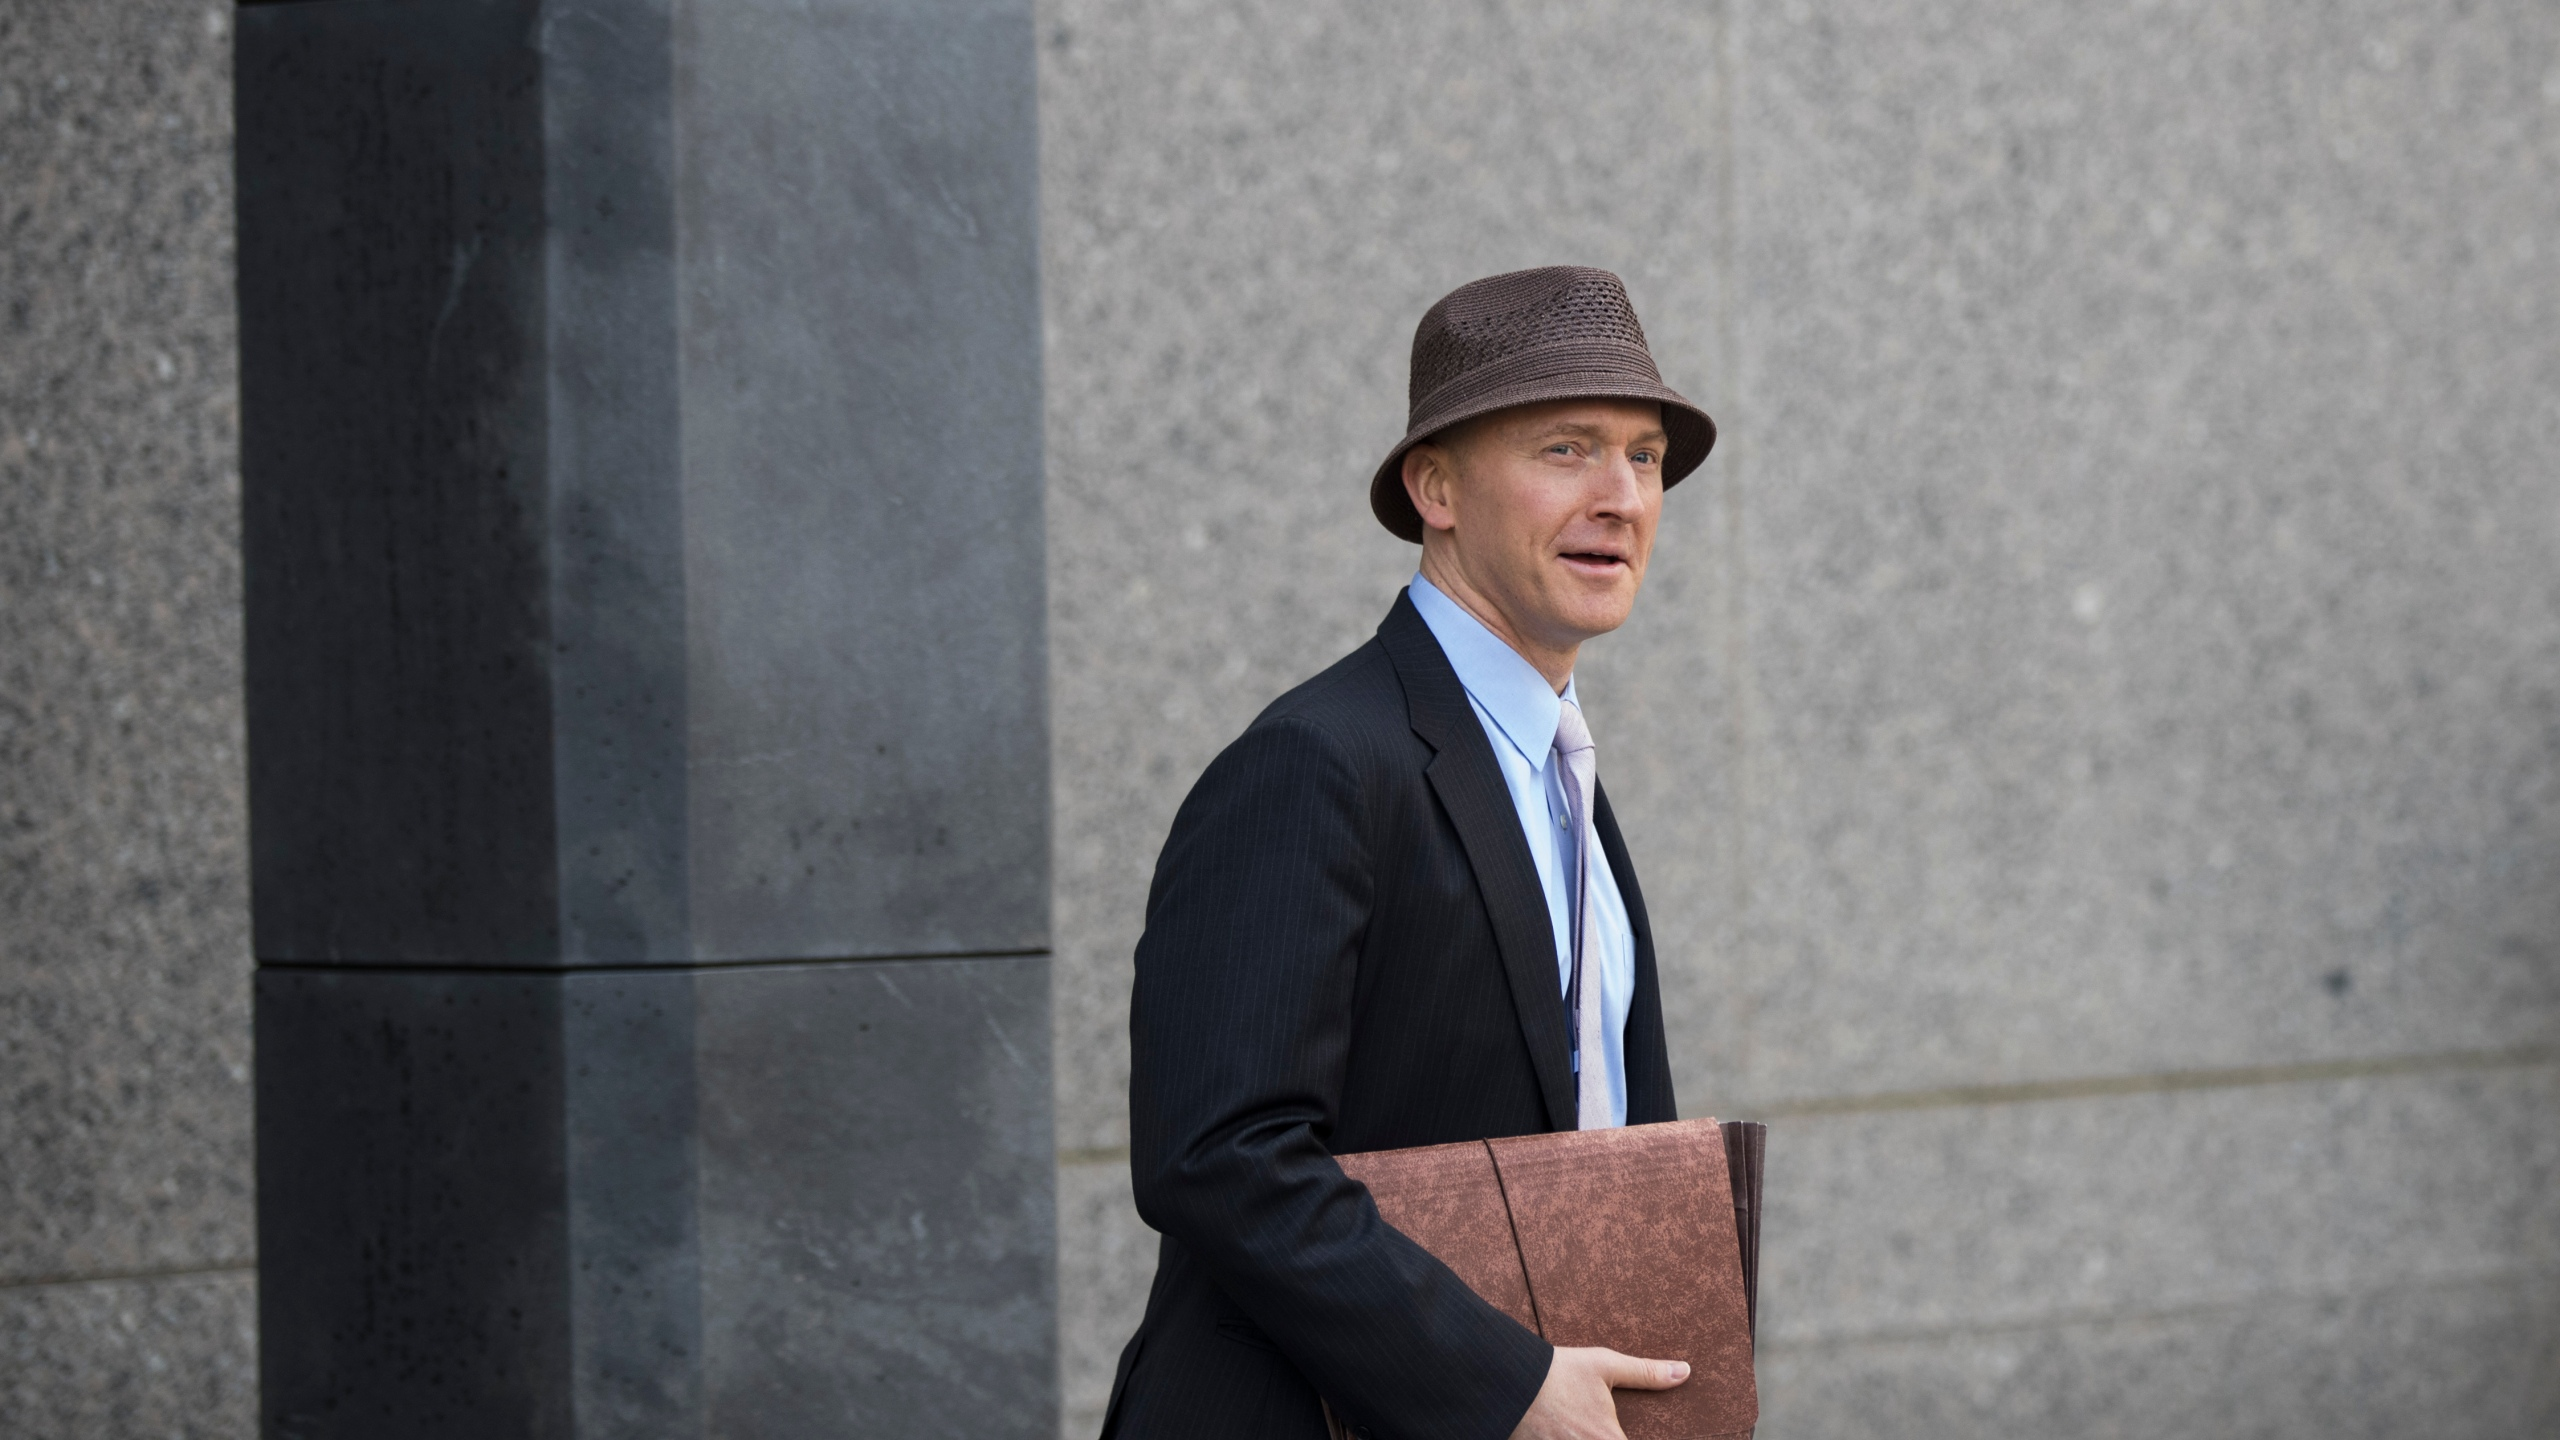 Carter Page arrives at the courthouse on the same day as a hearing regarding Michael Cohen, longtime personal lawyer and confidante for President Donald Trump, at the United States District Court Southern District of New York, April 16, 2018 in New York City. (Credit: Drew Angerer/Getty Images)